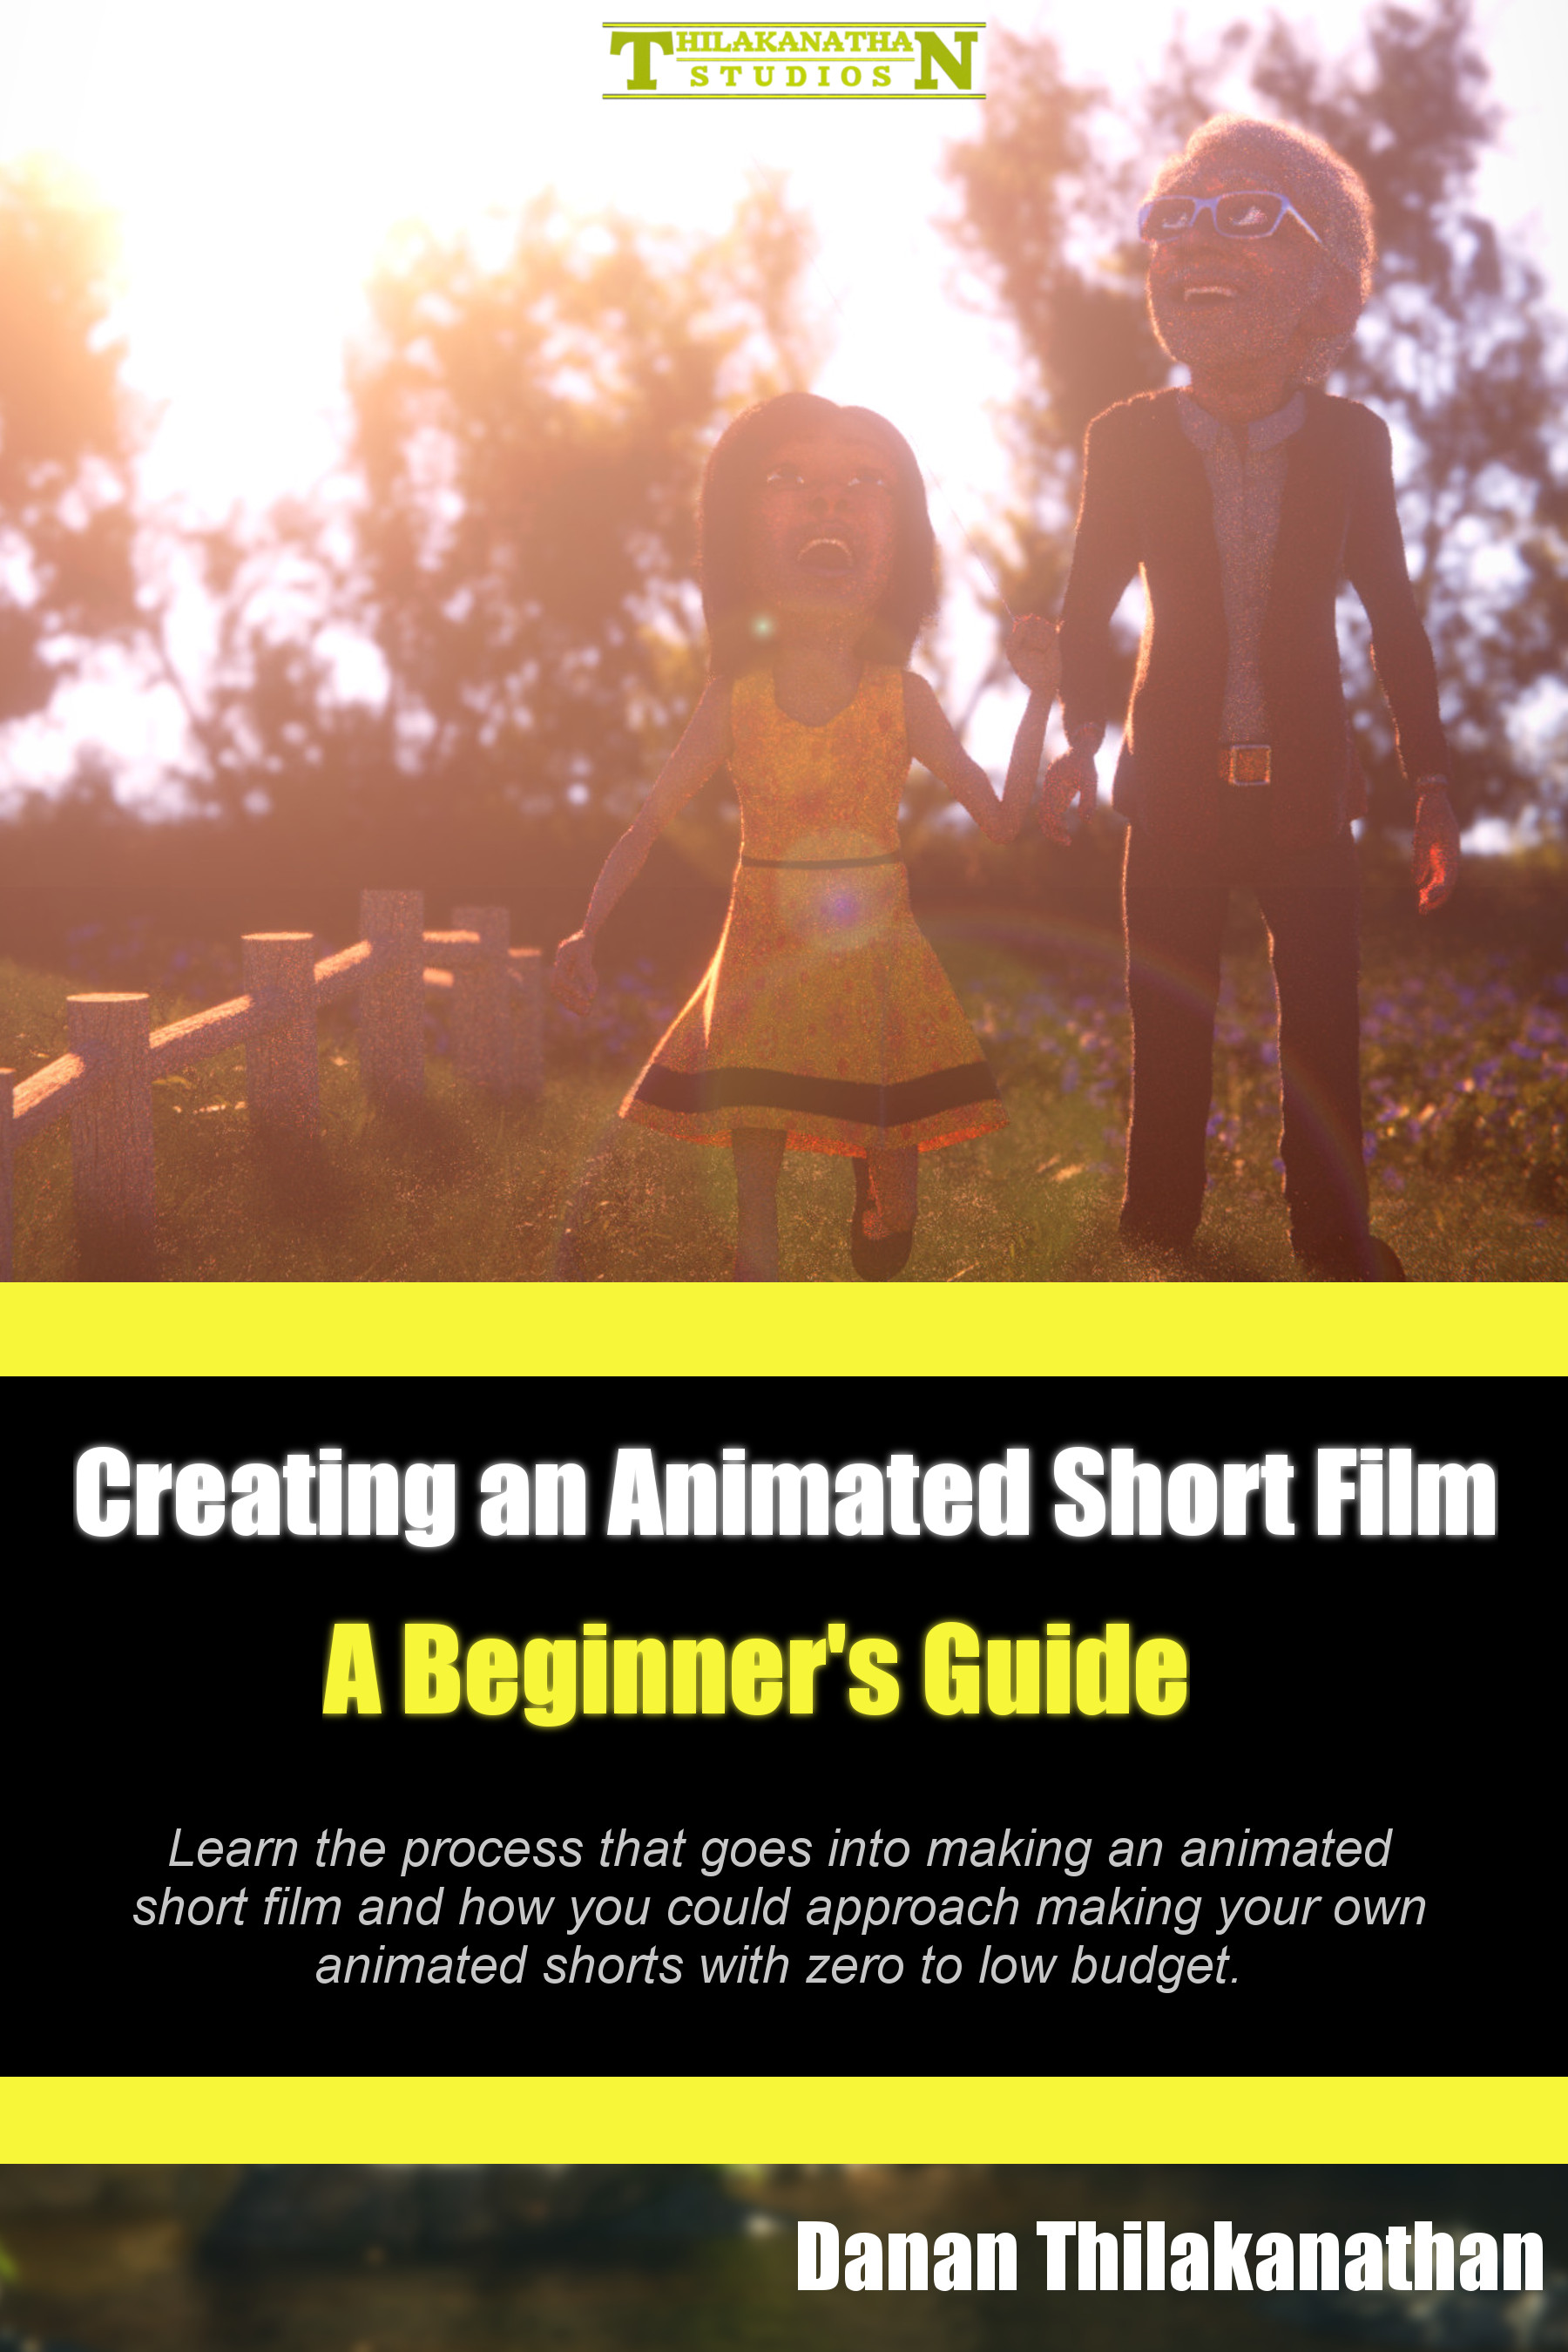 Creating an Animated Short Film for Beginners – Free eBook for limited time!